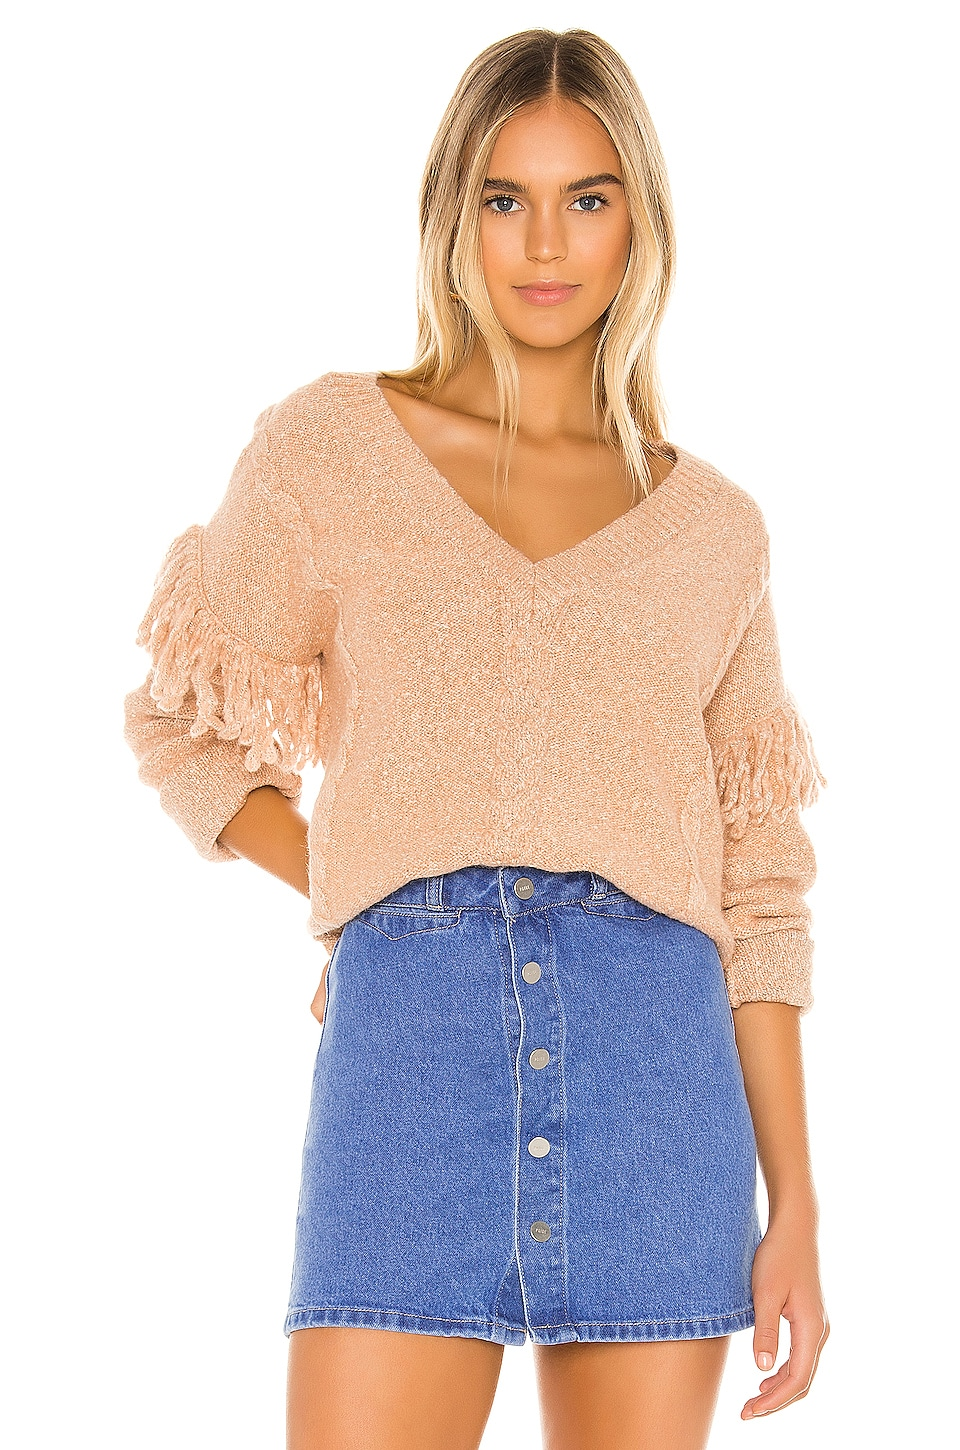 Tularosa Lonestar Sweater in Peach